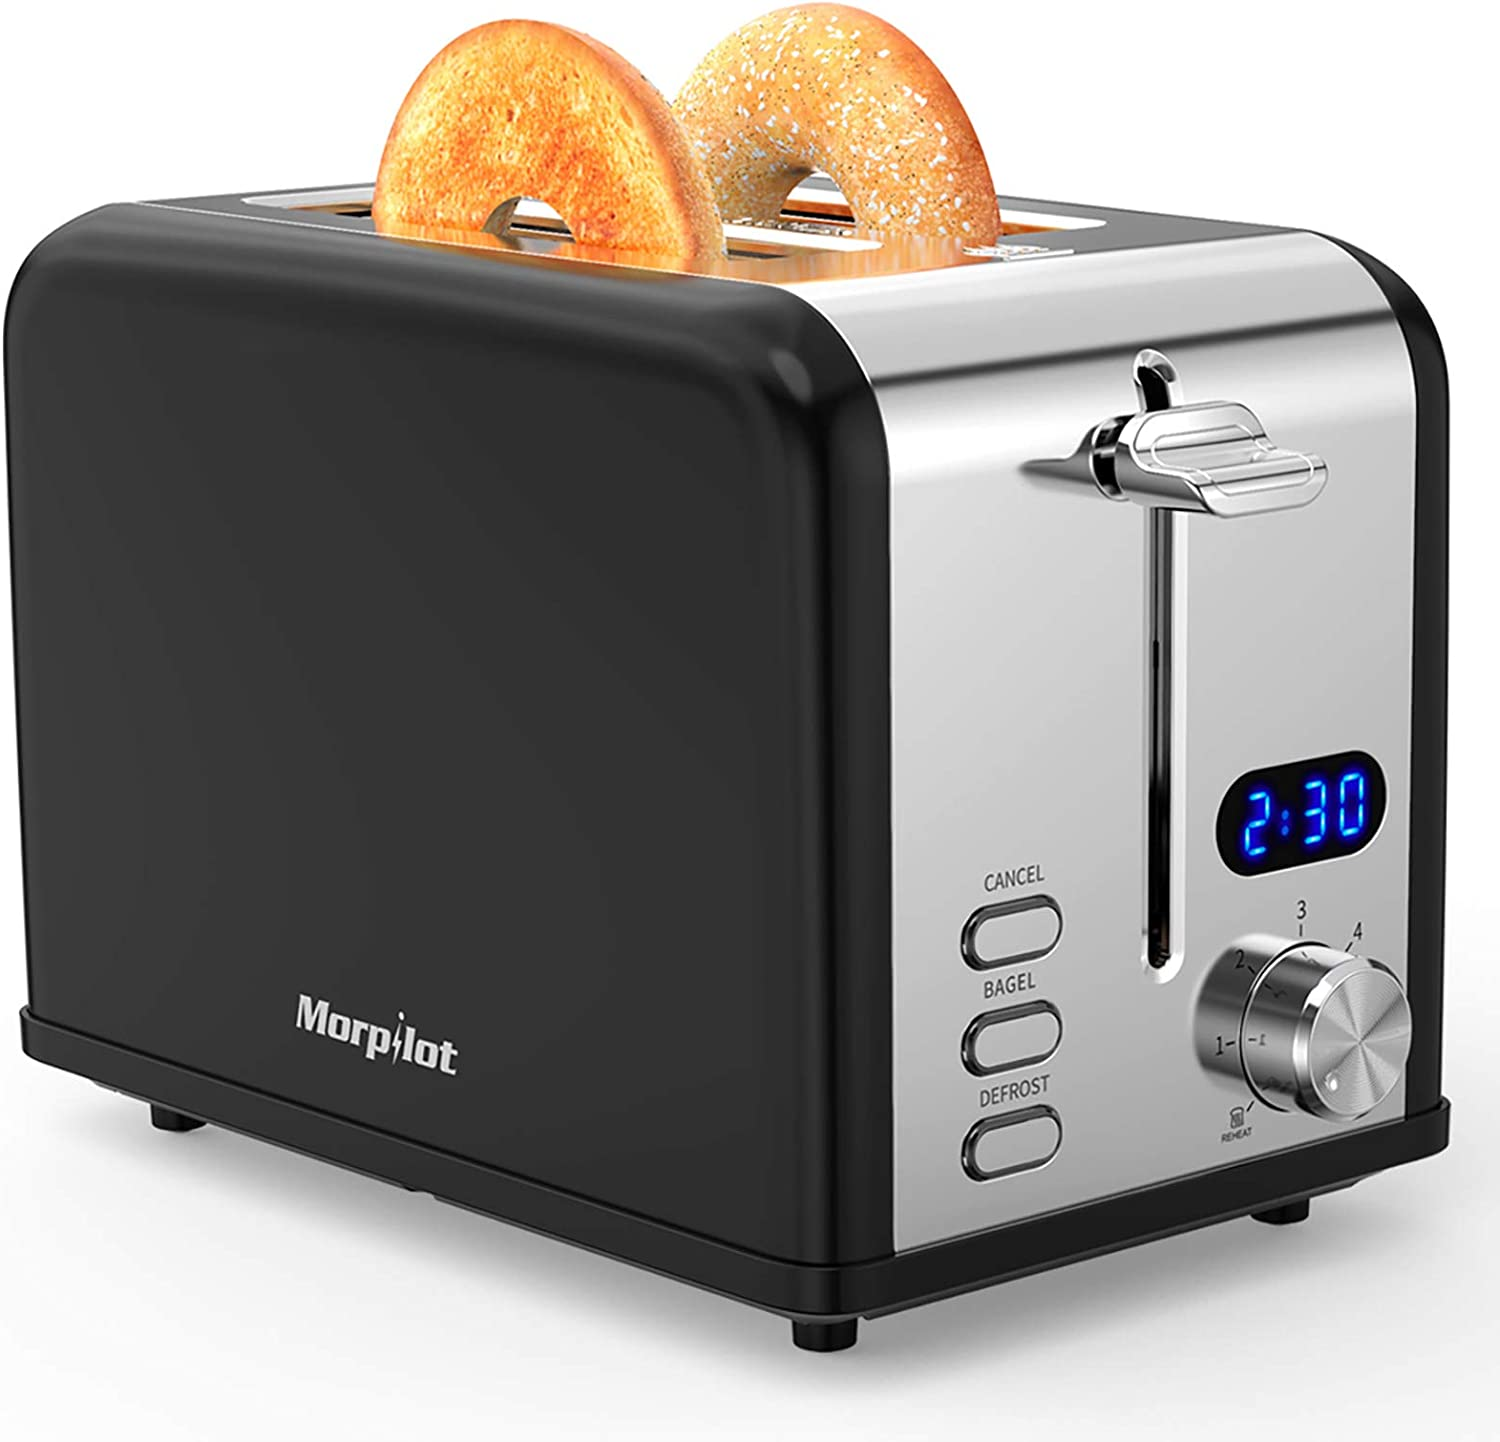 Toaster 2 Slice, Morpilot Retro Stainless Steel Bagel Toasters with Timer, Wide Slots, Removable Crumbs Tray, Black